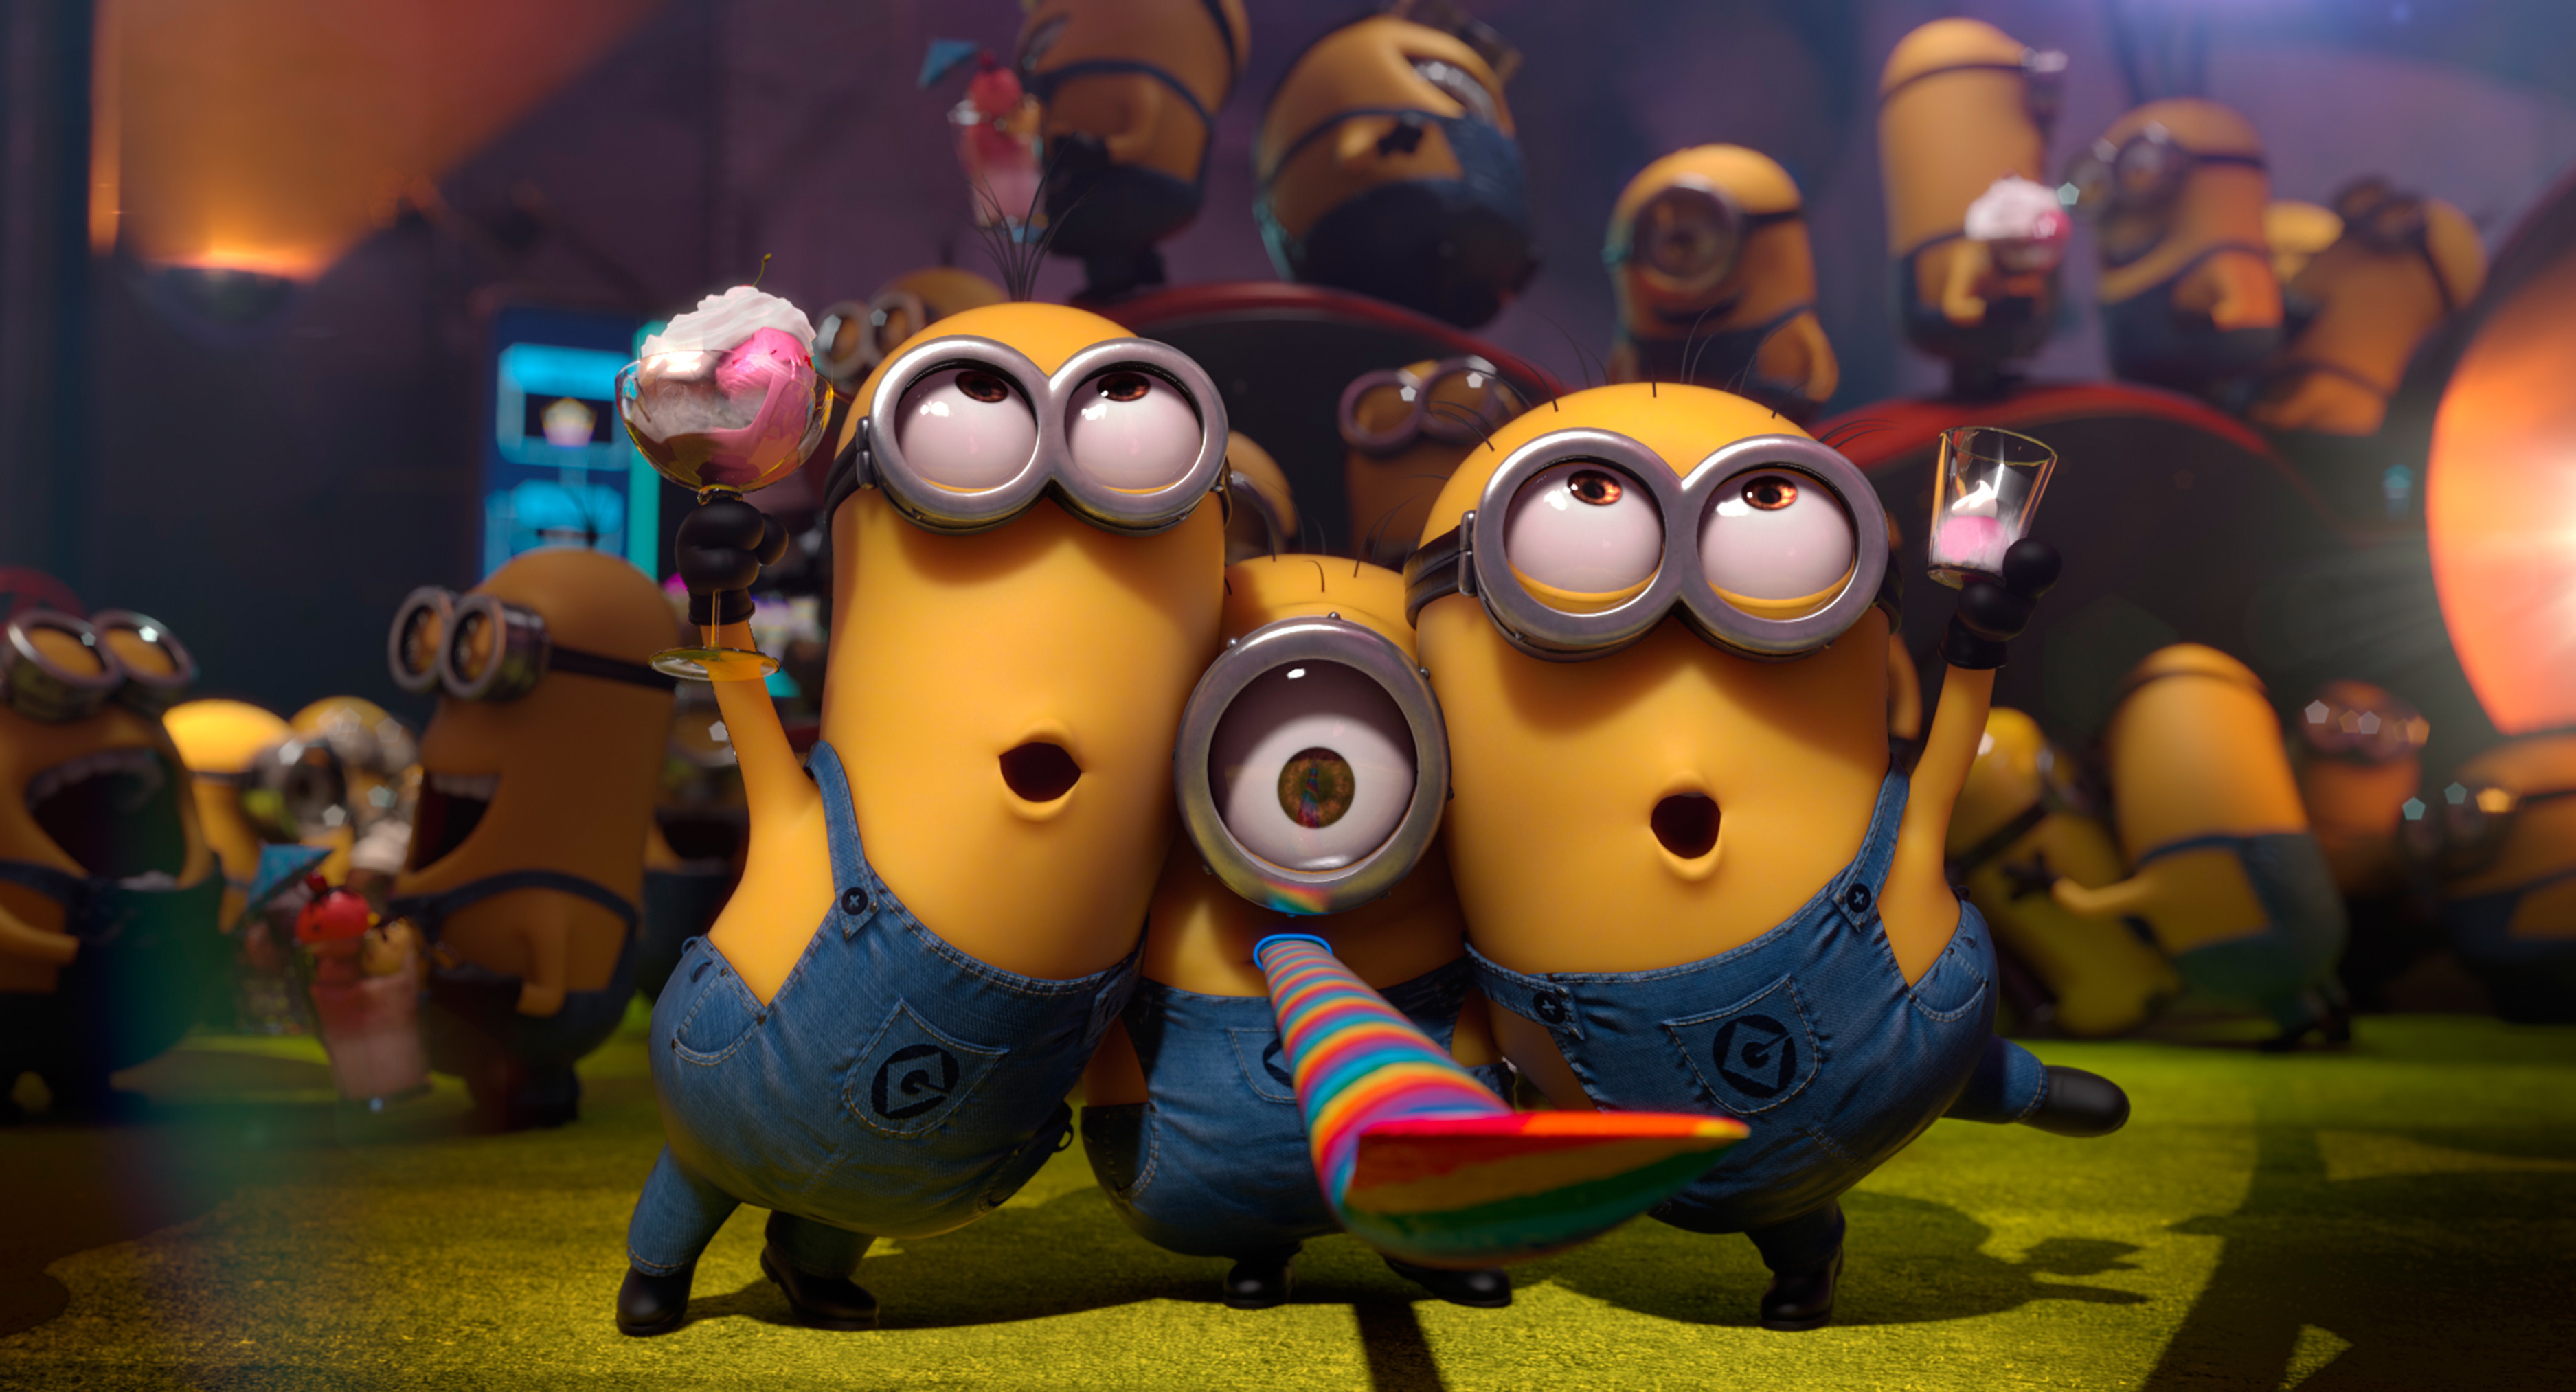 Res: 3750x2027, Despicable Me Minion Wallpapers .